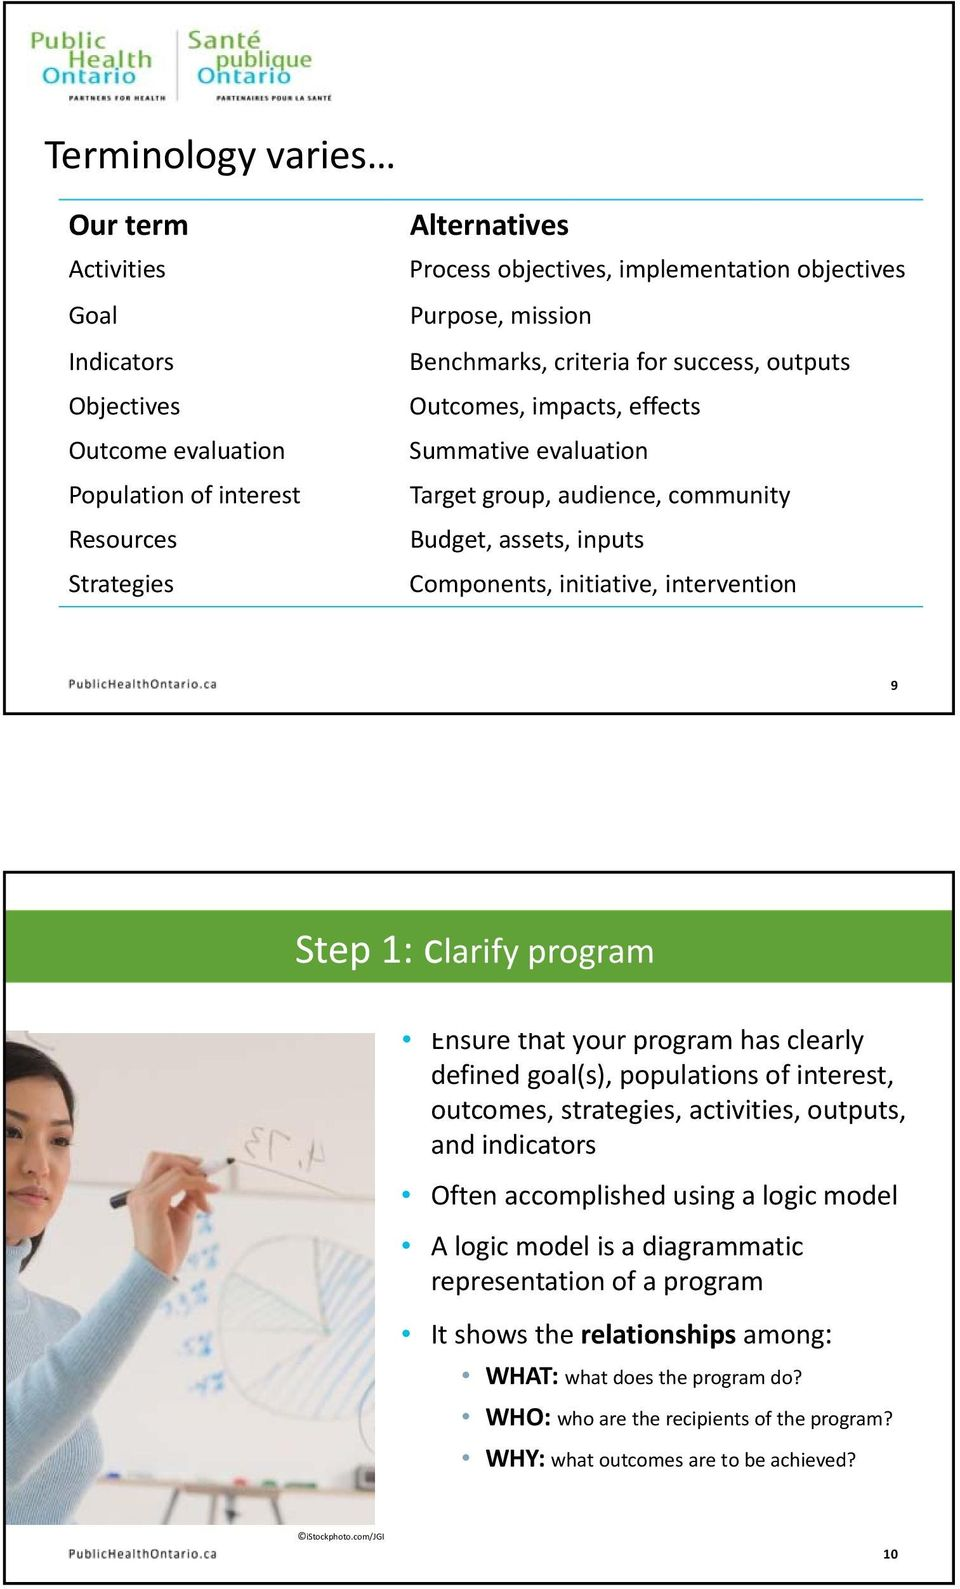 1: clarify program Ensure that your program has clearly defined goal(s), populations of interest, outcomes, strategies, activities, outputs, and indicators Often accomplished using a logic model A